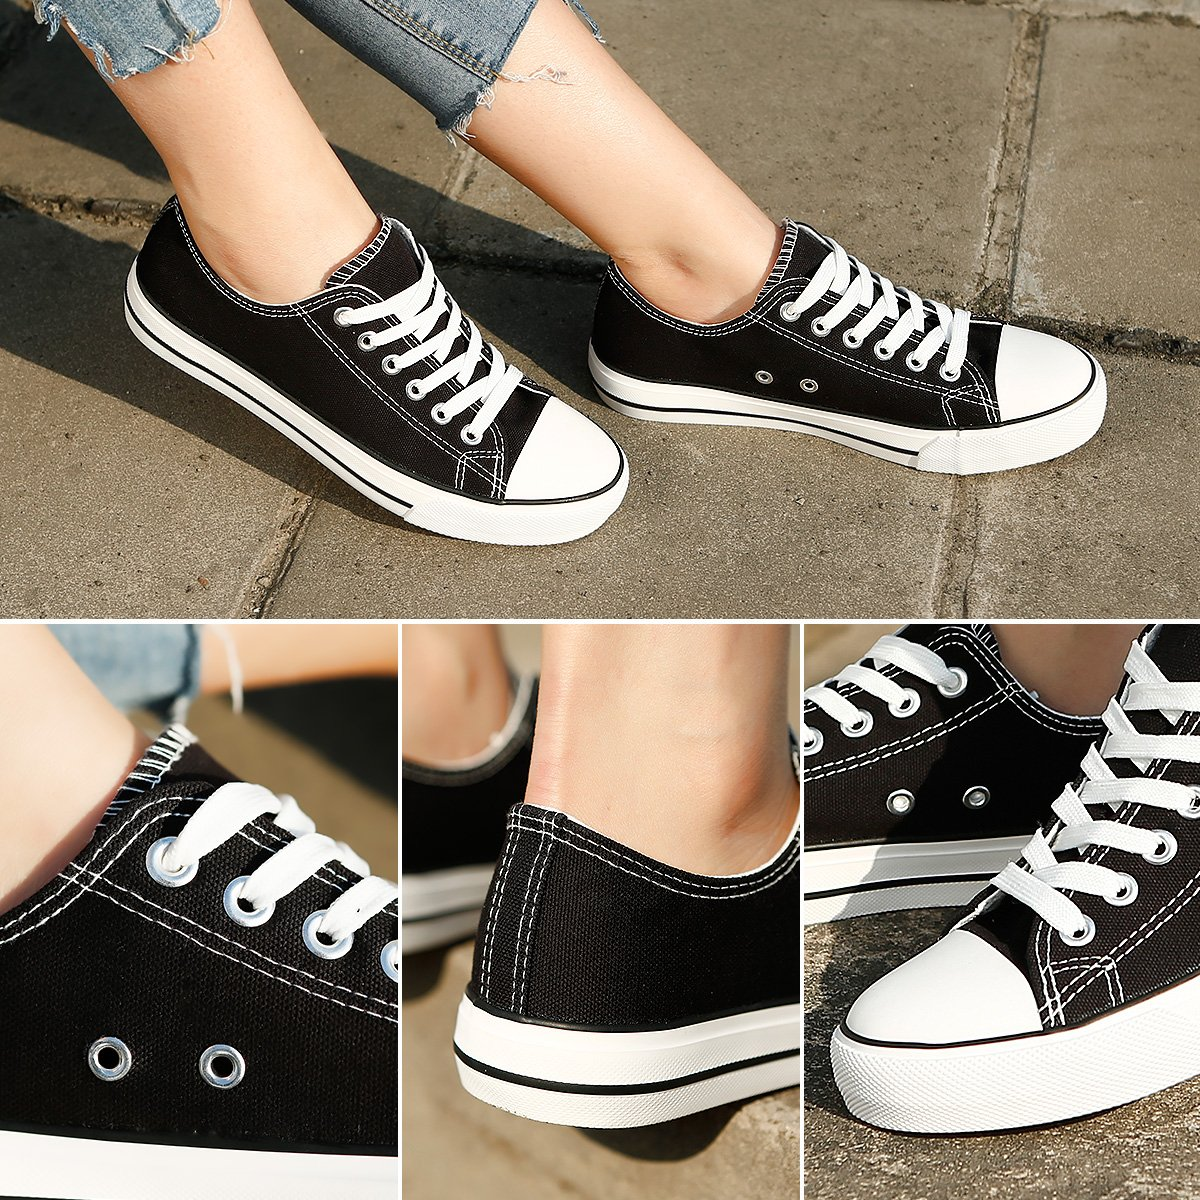 ZGR Canvas Sneaker Low Cut Season Lace Ups Shoes Casual Trainers for Women and Teenager Black US9 by ZGR (Image #4)